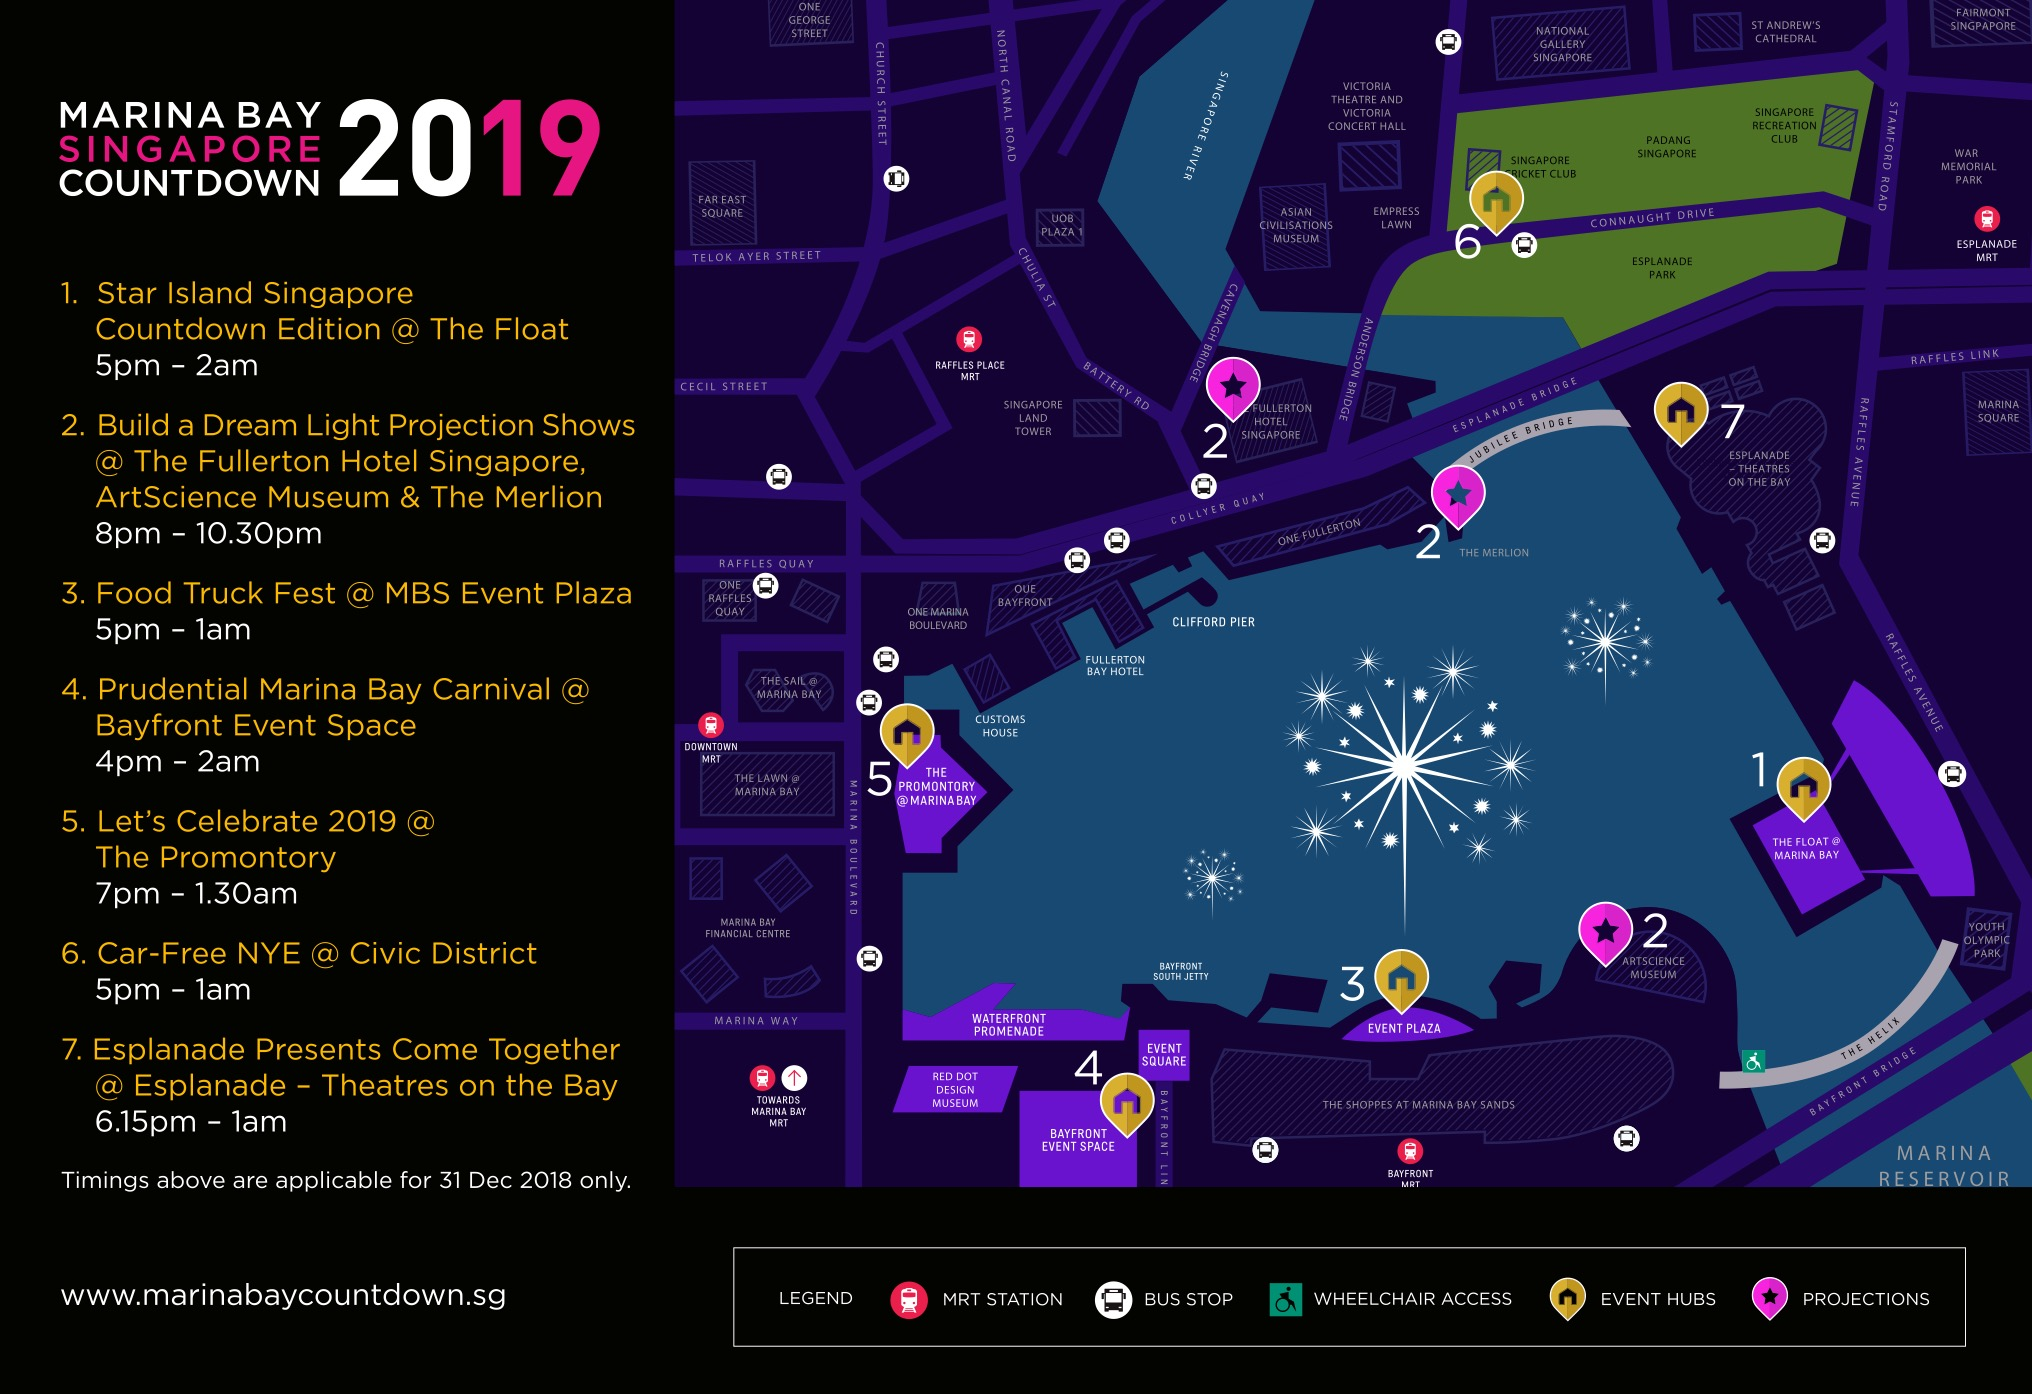 [PRESS RELEASE] Marina Bay Singapore Countdown 2019 invites all to ring in the New Year with hopes and dreams.jpg